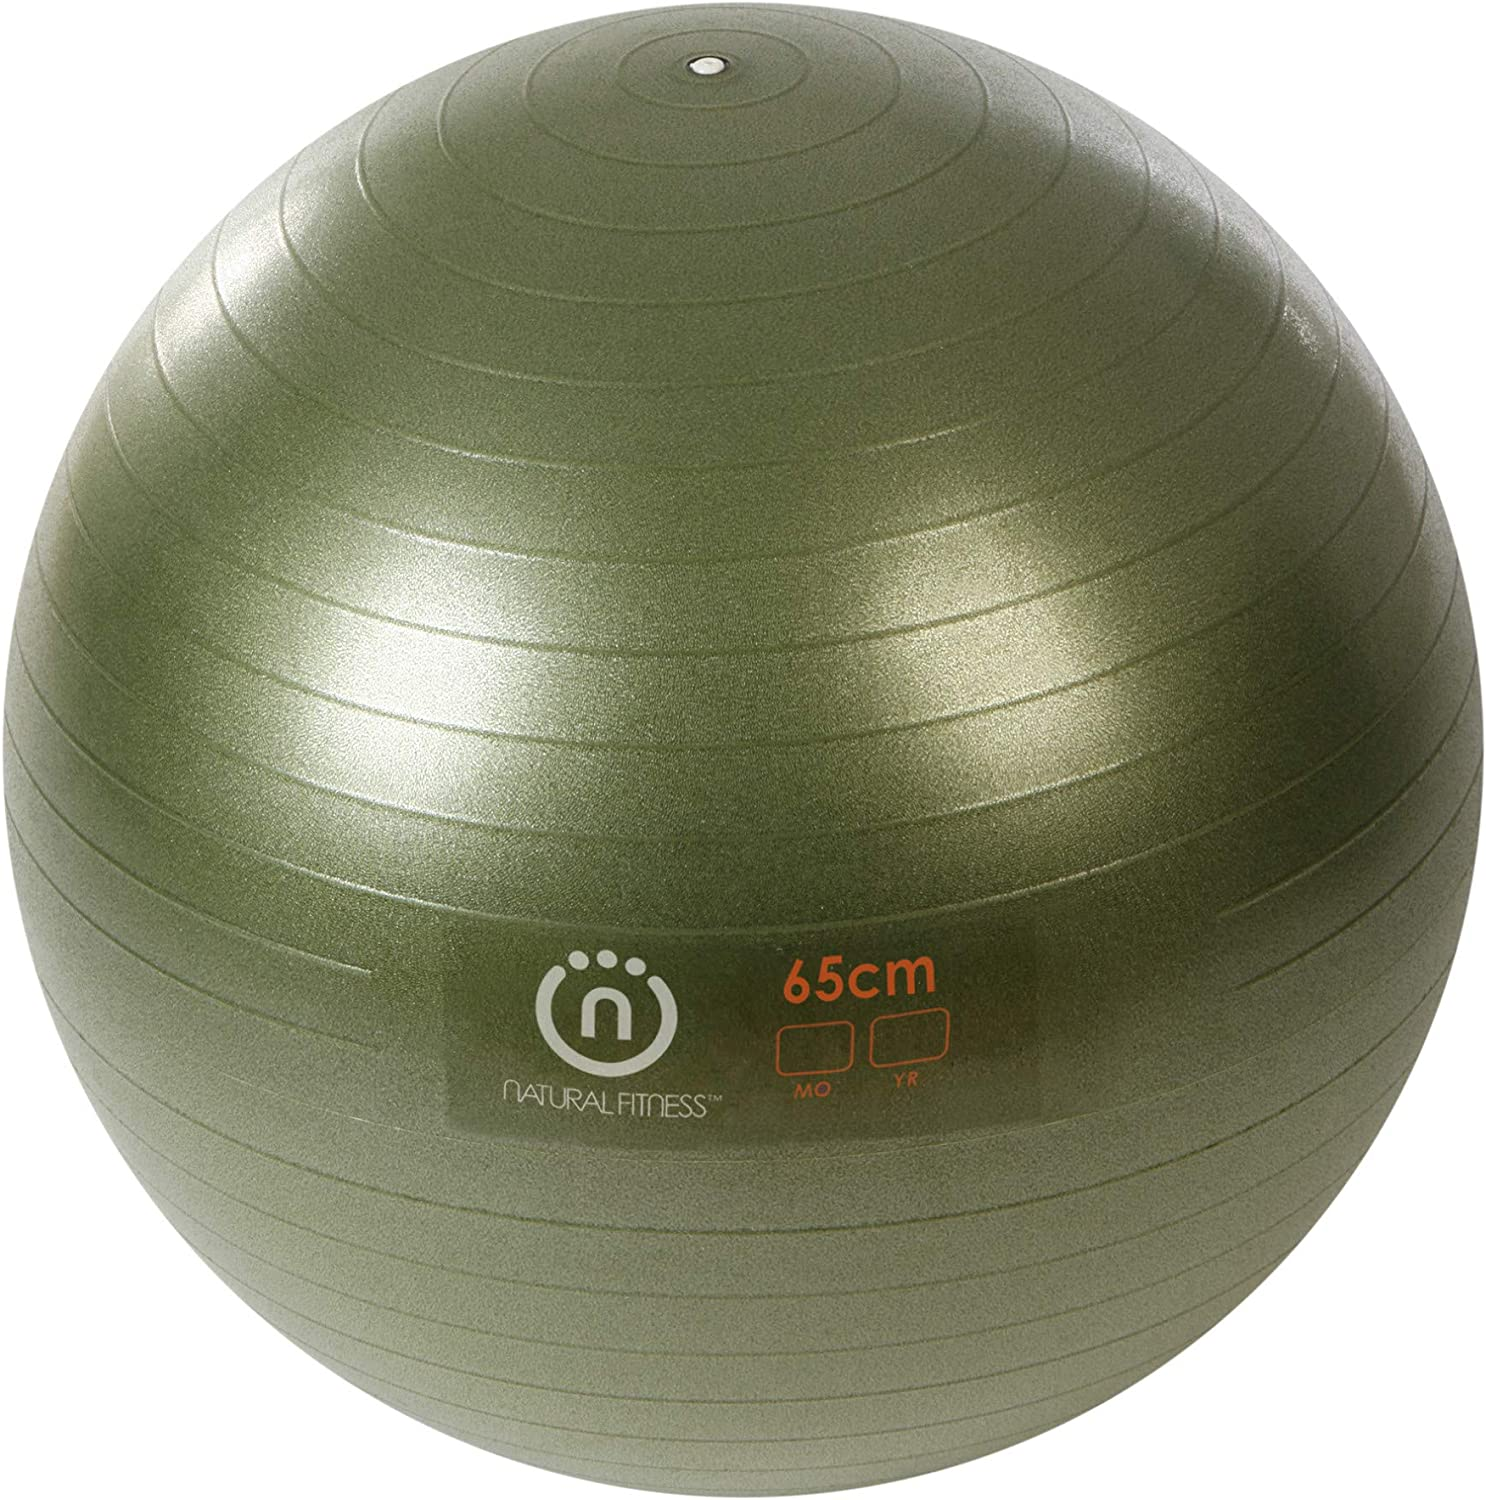 Details about  /Exercise Ball for Yoga Fitness Pilates Gymnastic Strength Training 18inch